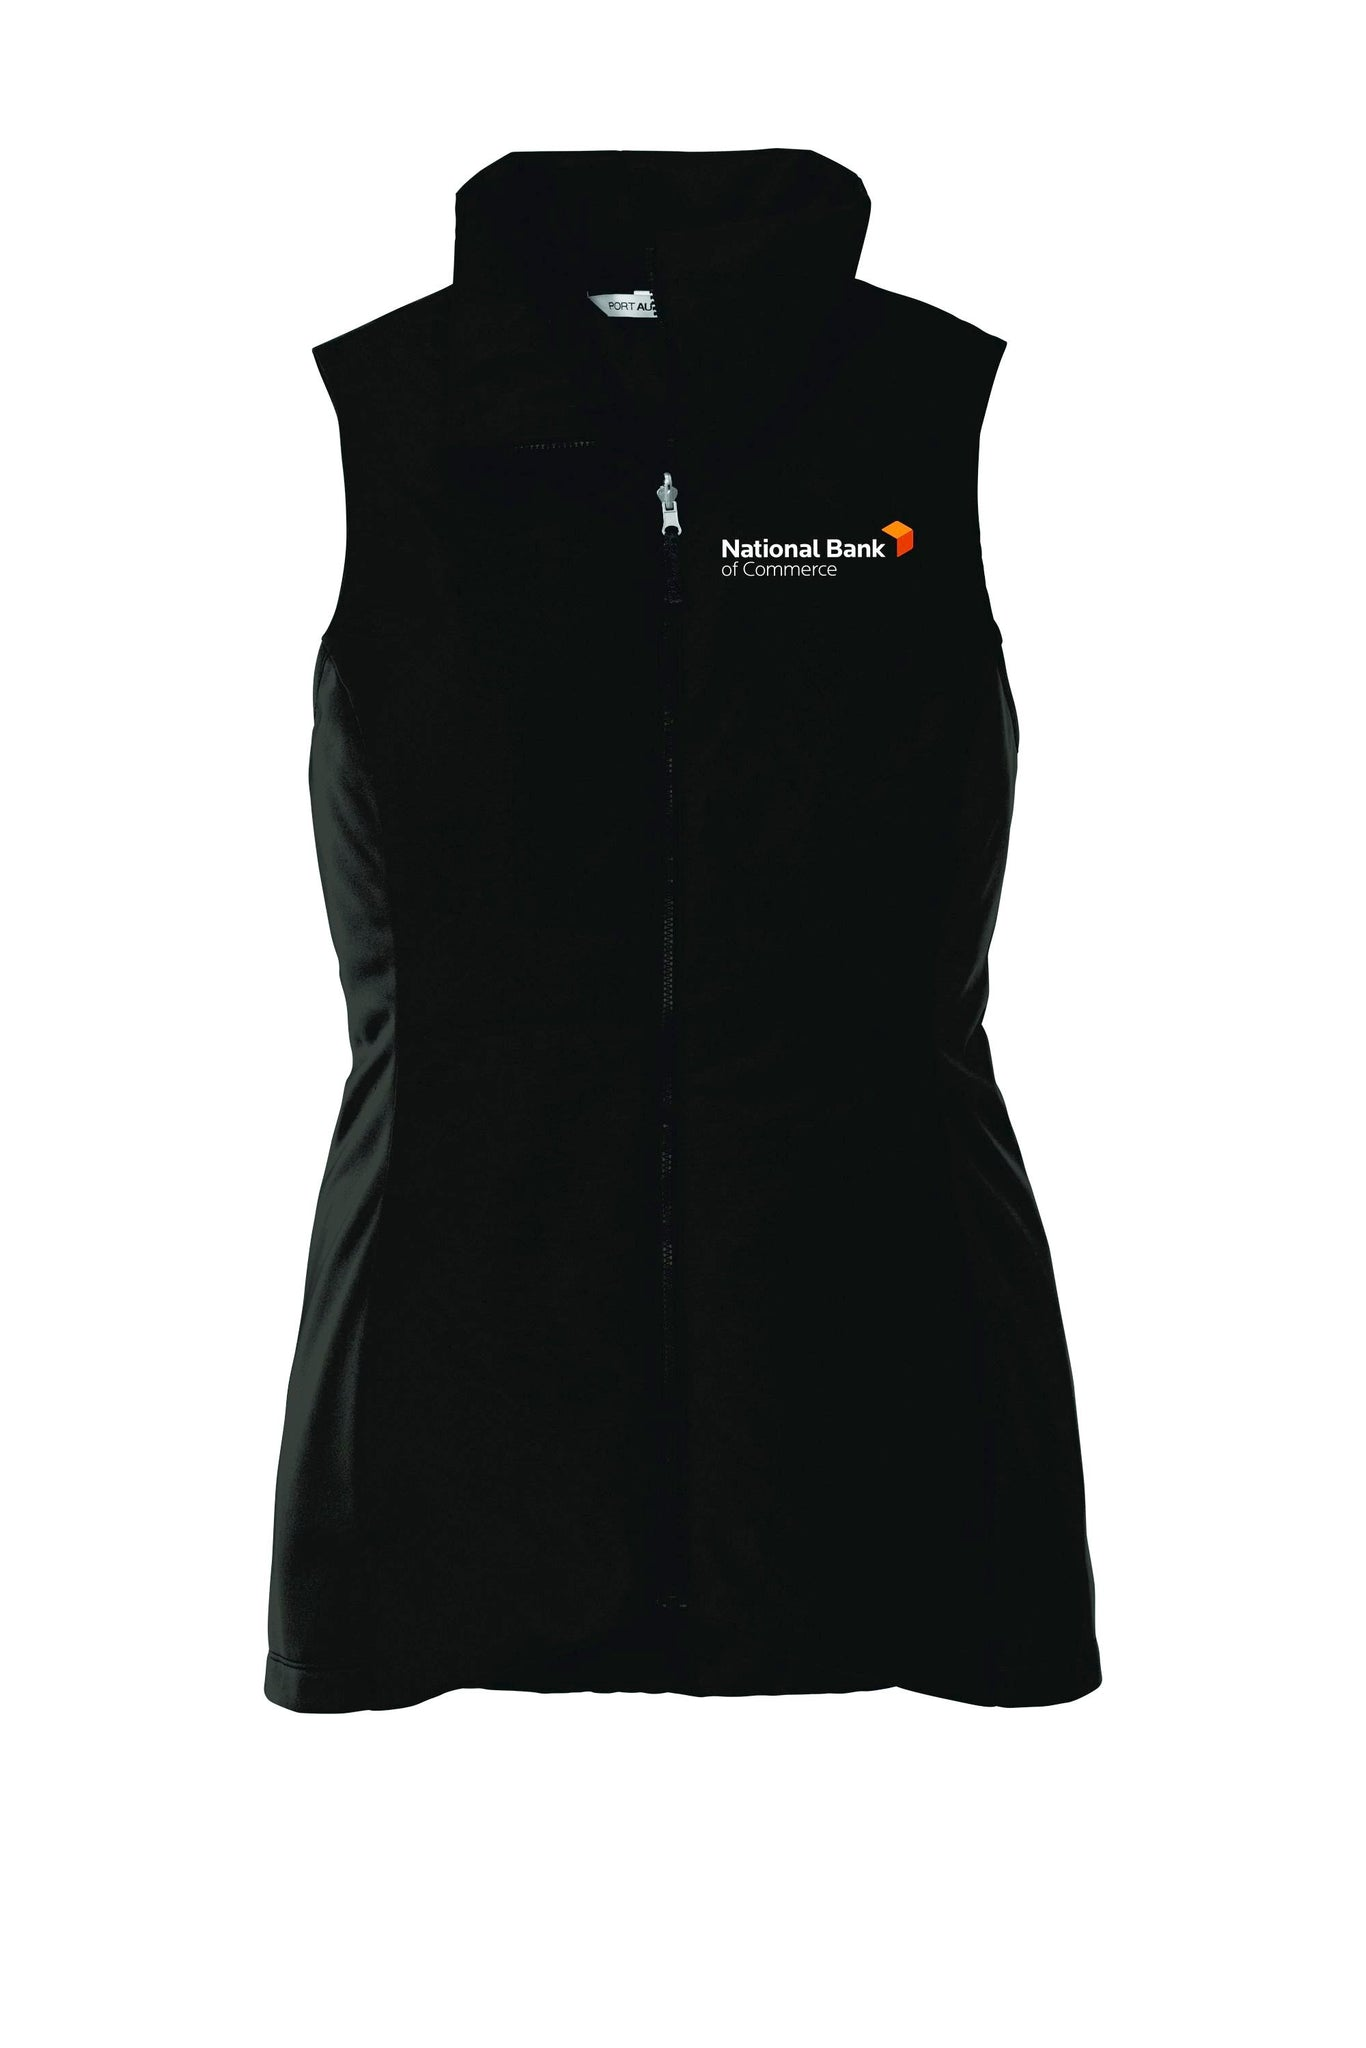 L903NEW Port Authority ® Ladies Collective Insulated Vest with Embroidered logo